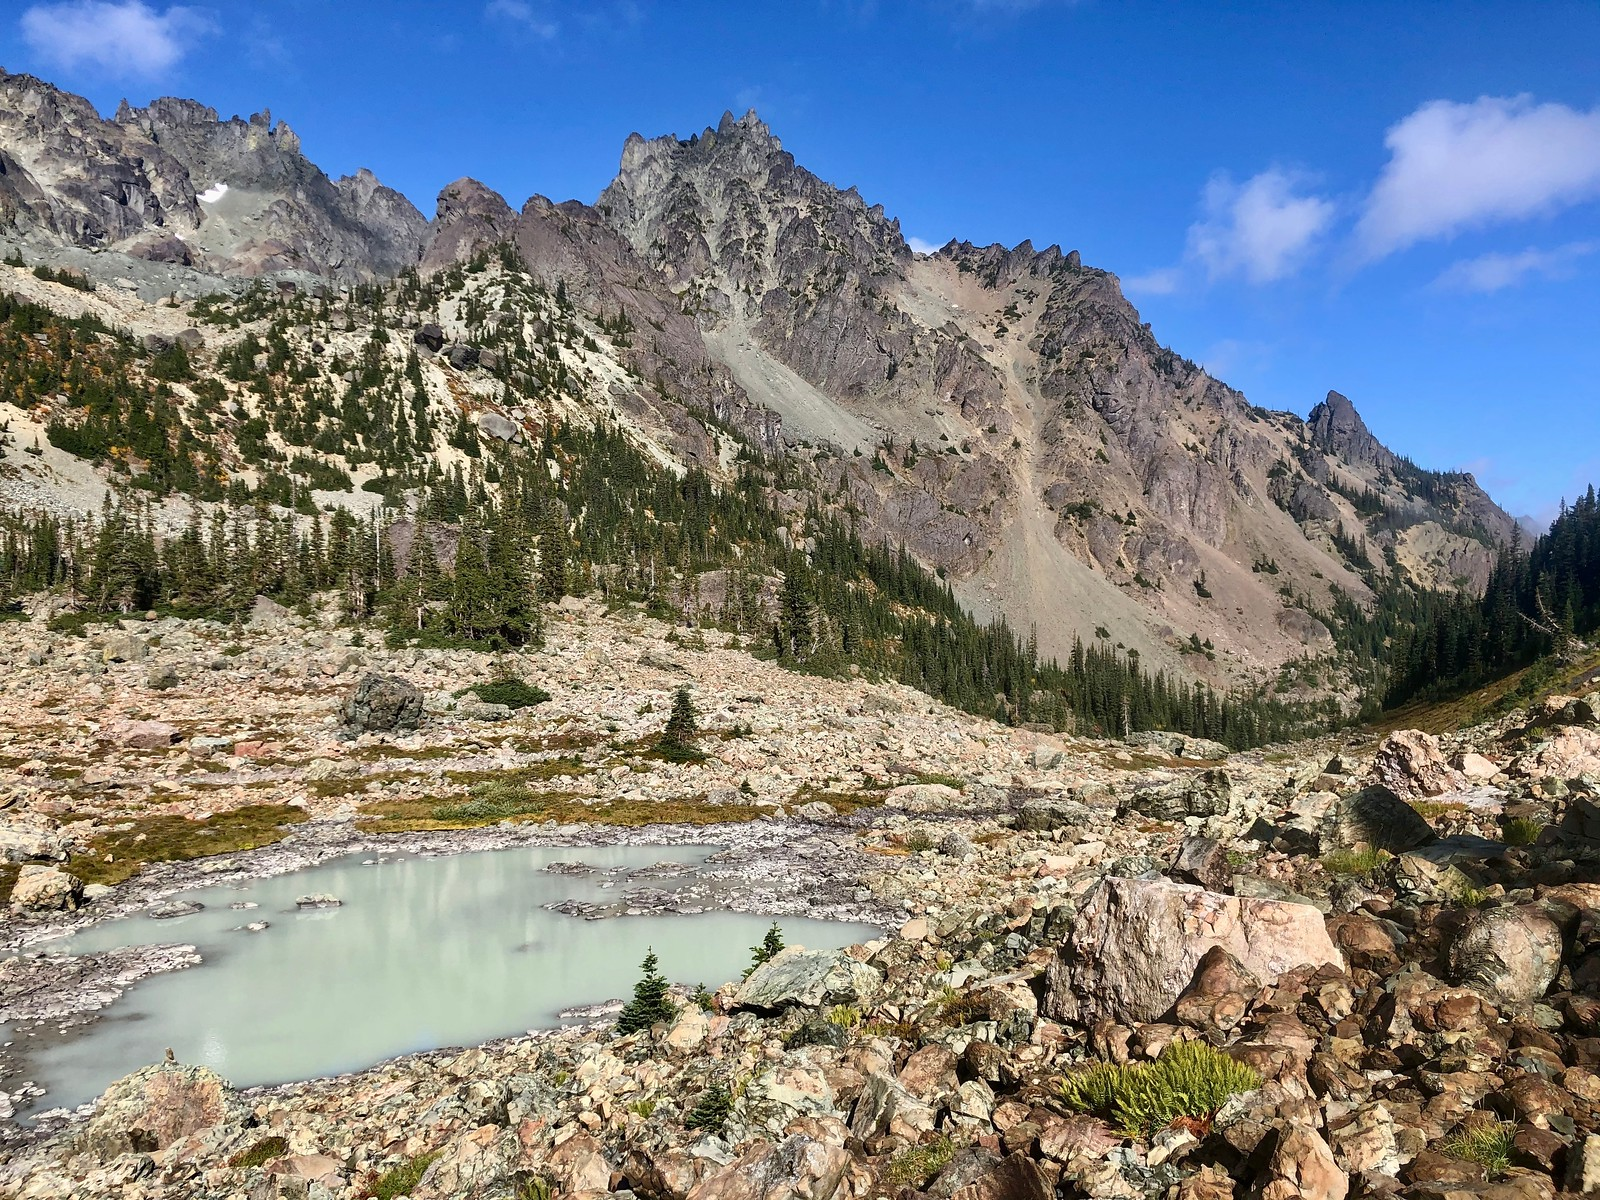 Smallest of the basin lakes